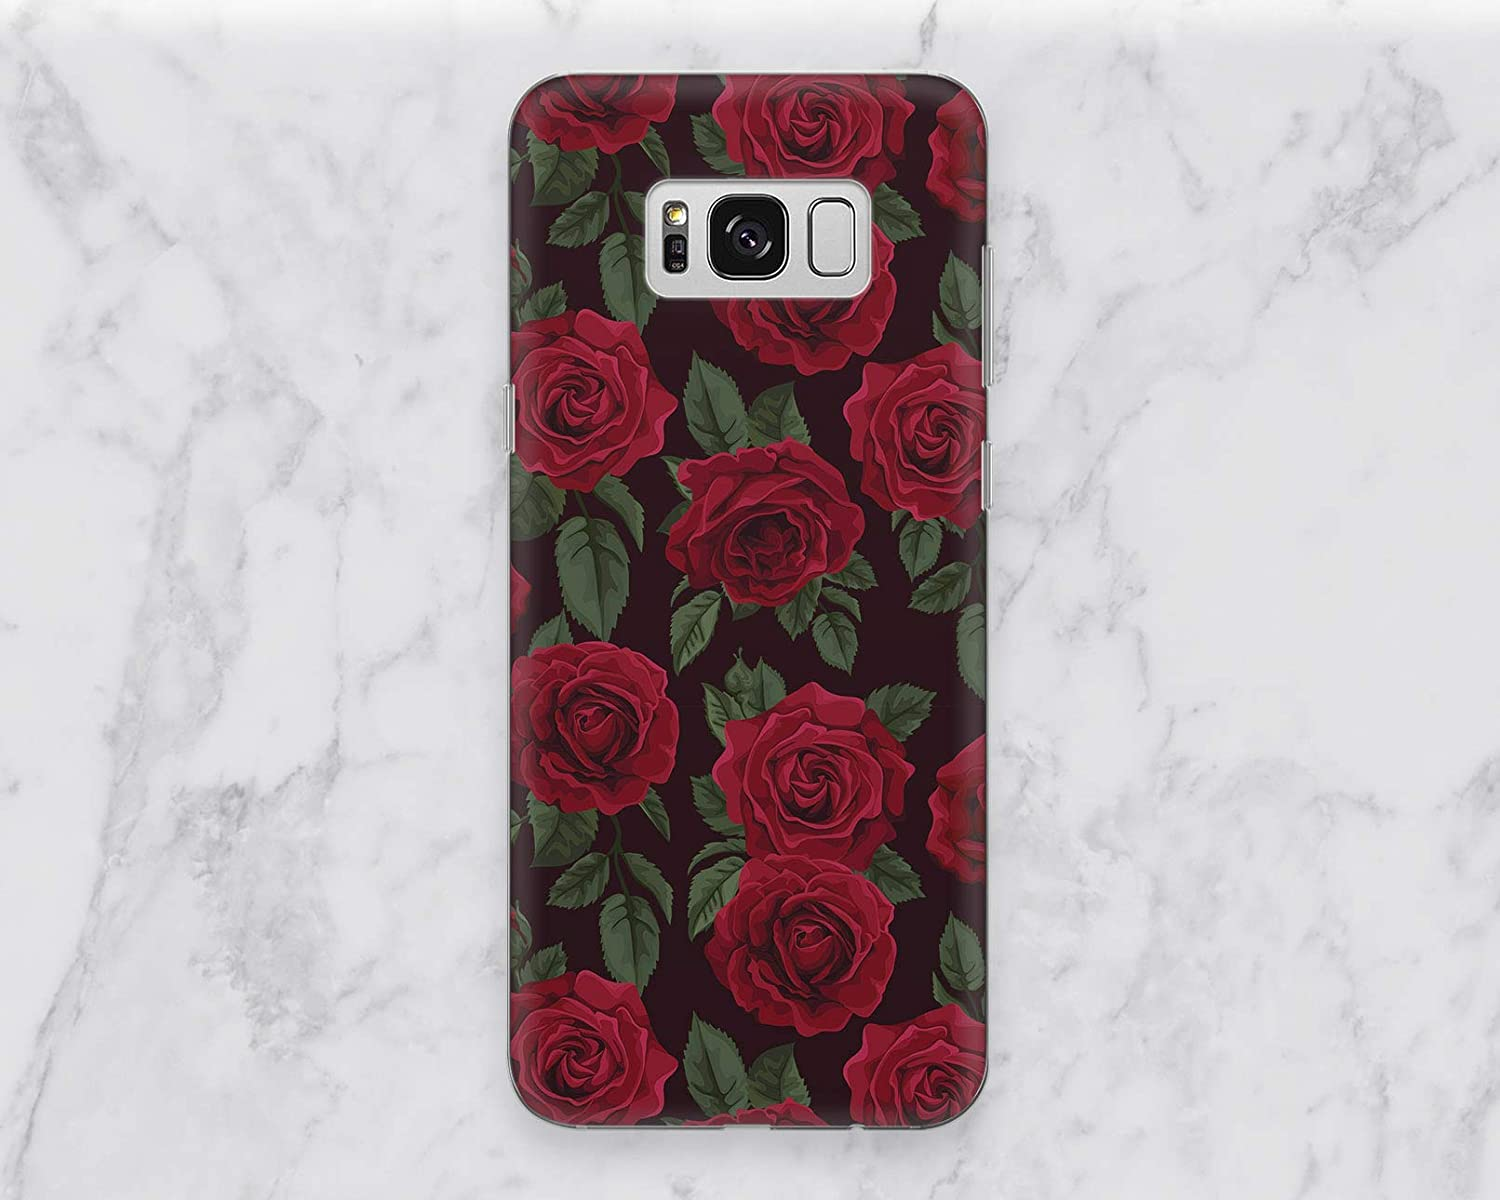 Burgundy Red Rose Pattern Back Cover Case For Phone Samsung Galaxy Note 8 9 S6 S7 S8 S9 S10 S10e Edge Plus Google Pixel 2 3 XL